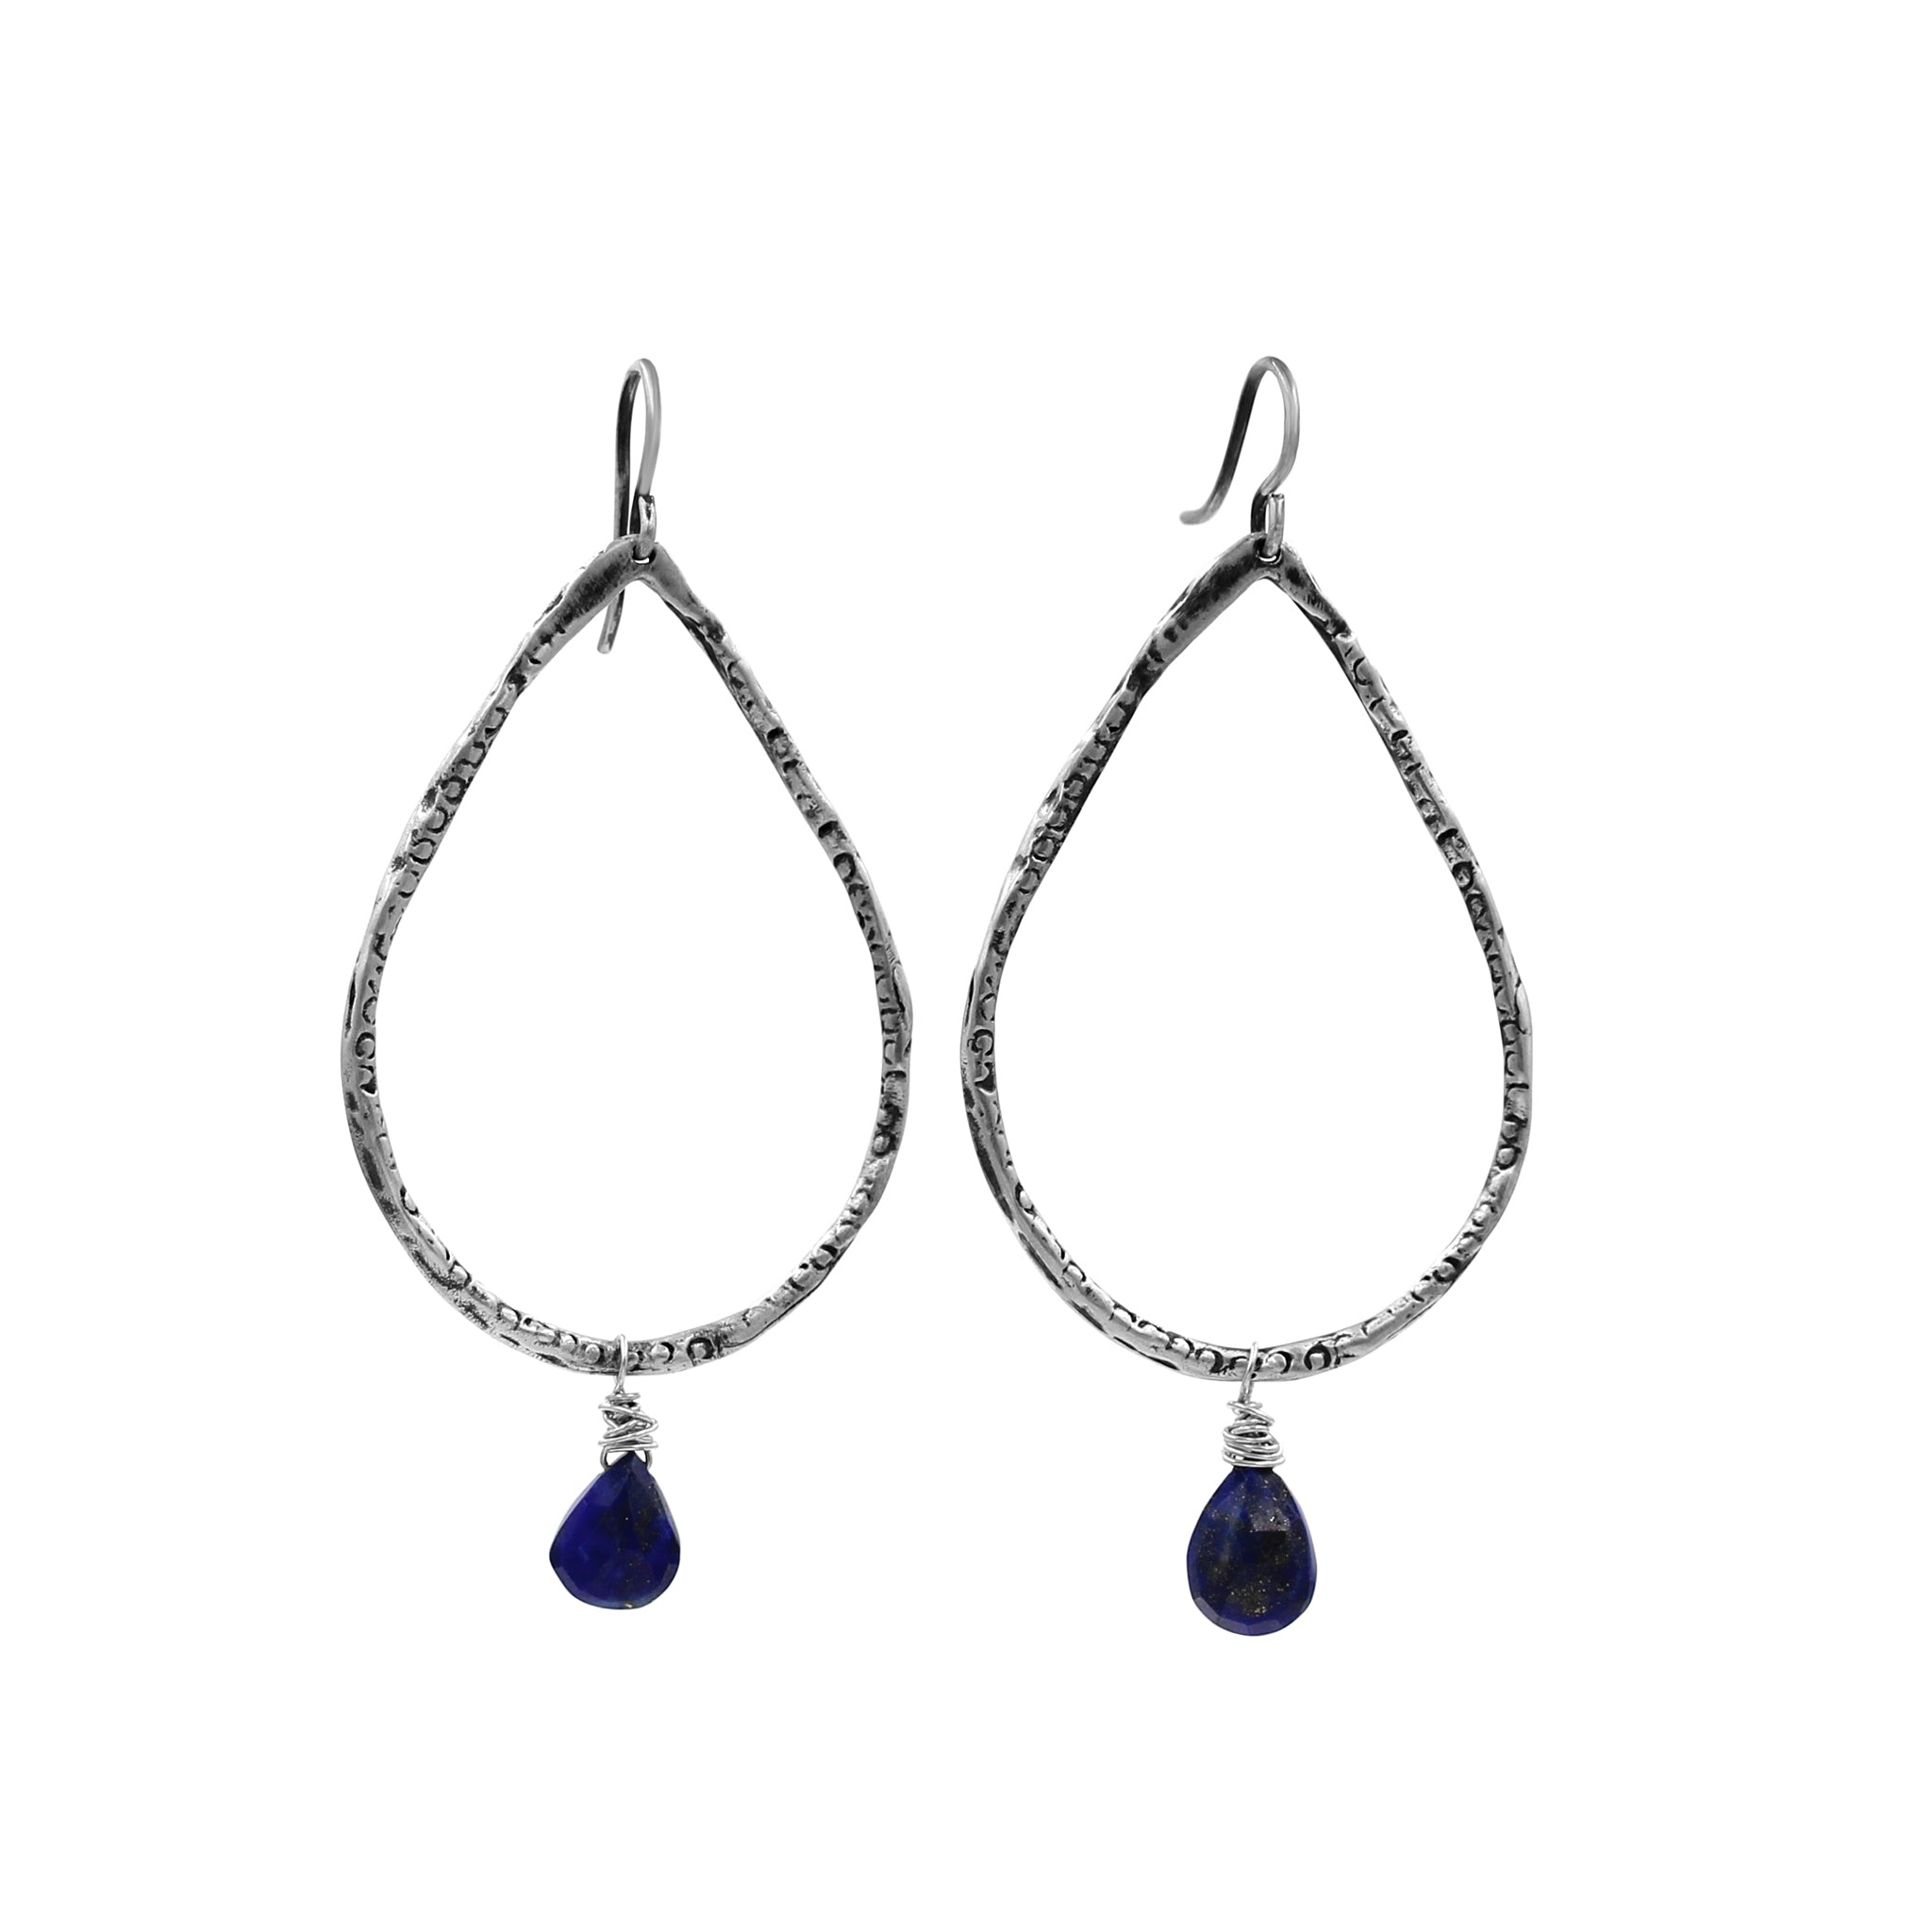 Radiance Lapis Earrings - Sati Gems Hawaii Healing Crystal Gemstone Jewelry